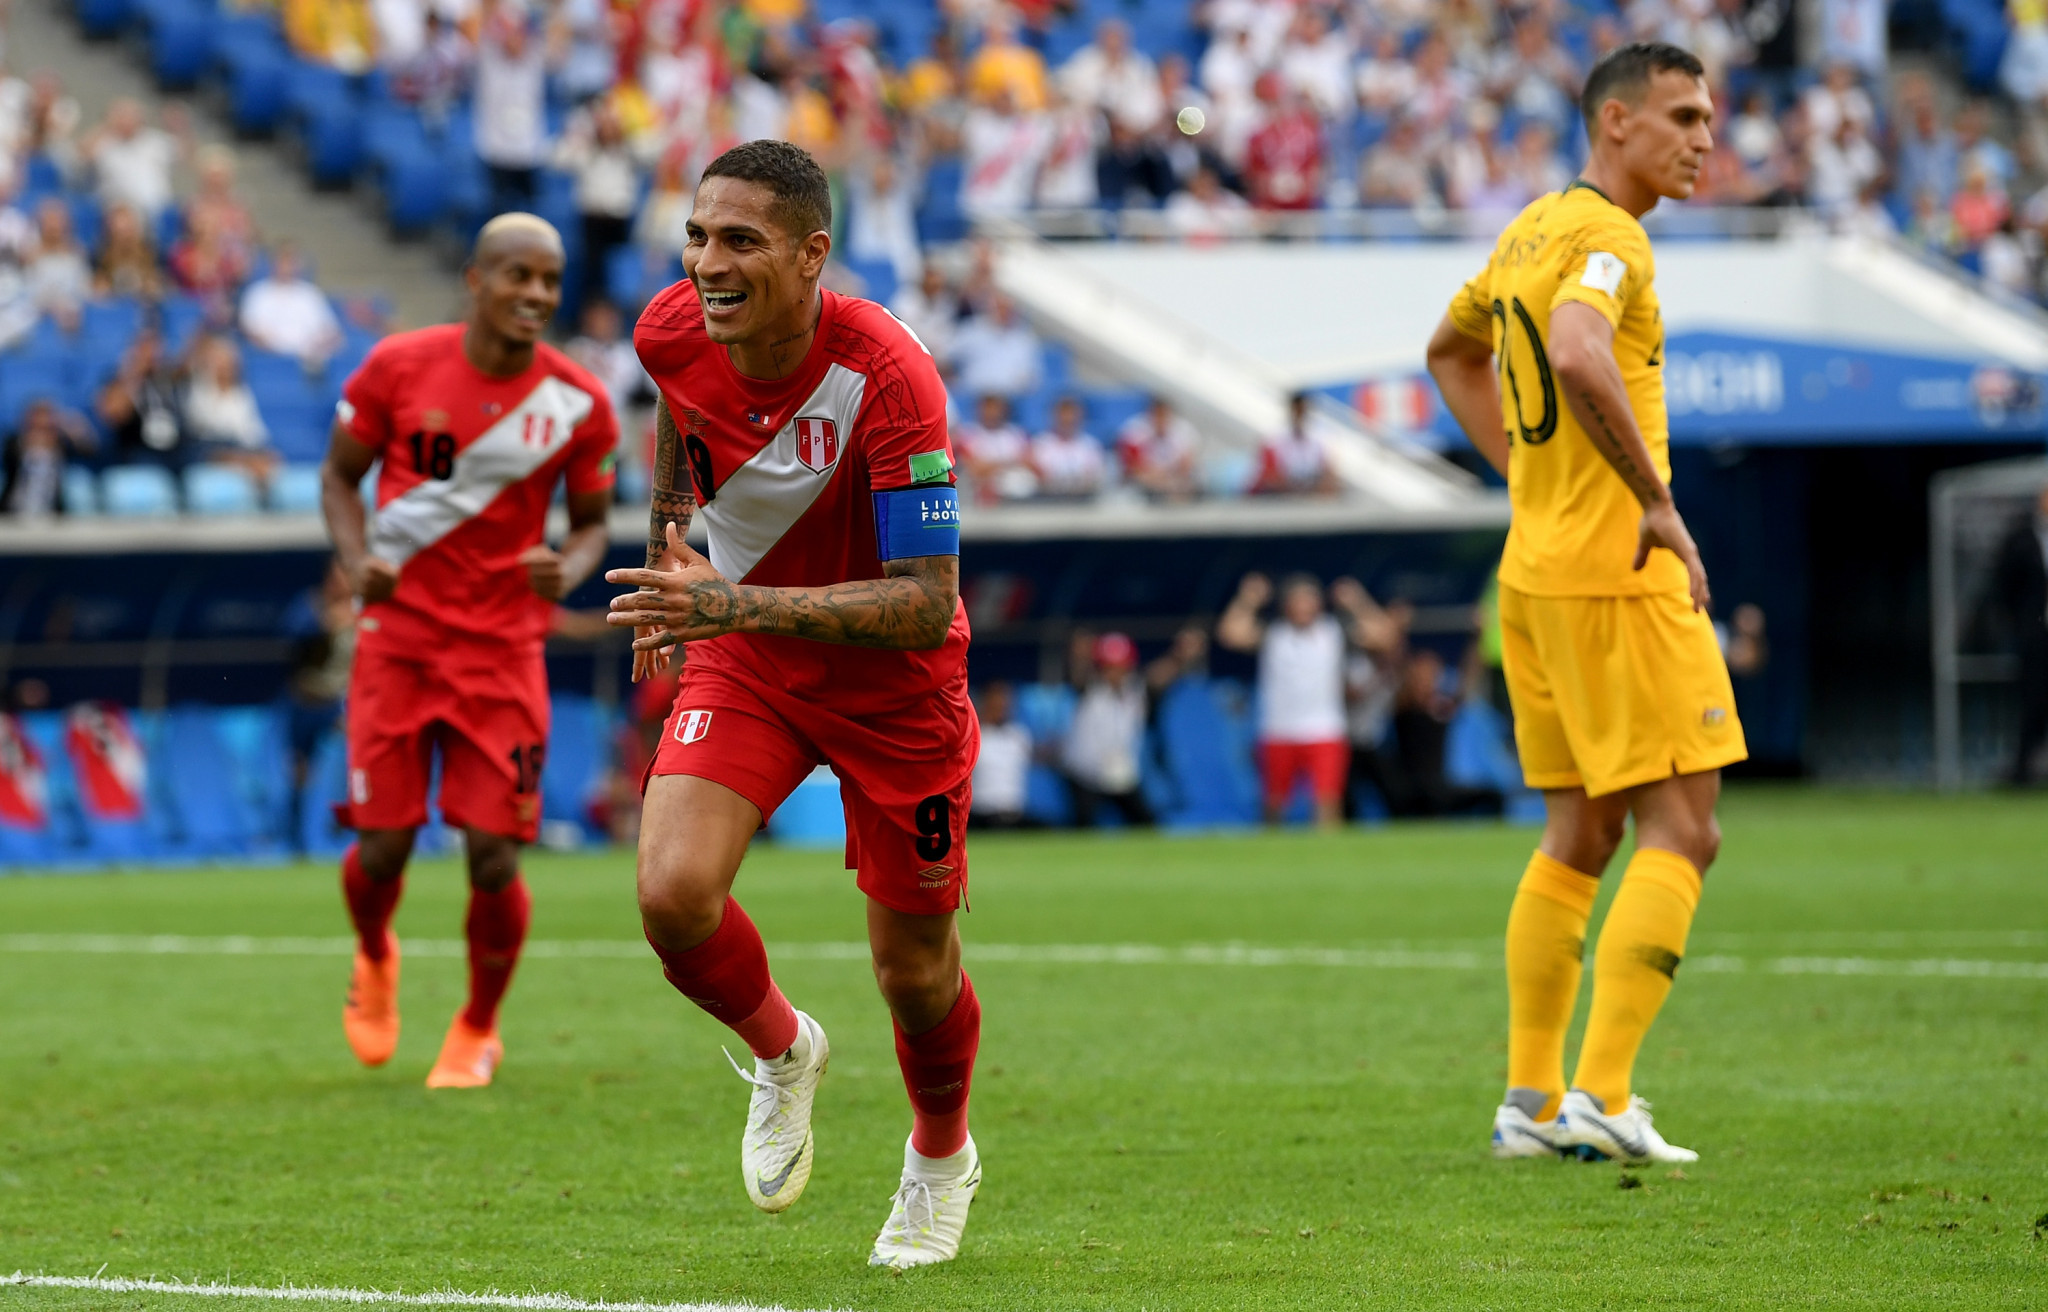 Paolo Guerrero will not be able to return for either club or country until early next month ©Getty Images